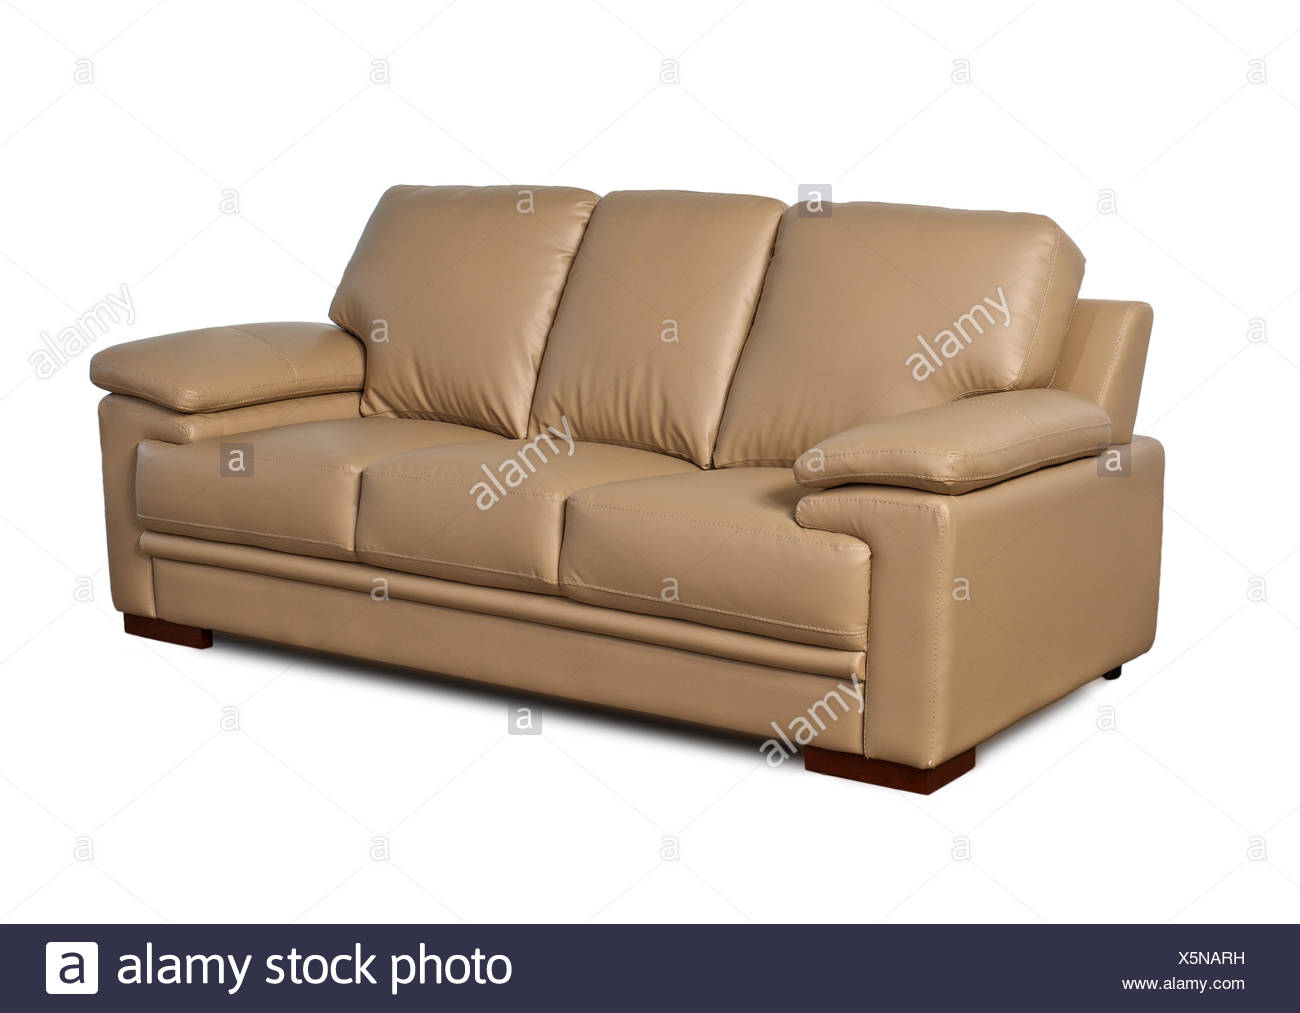 light brown leather sofa on white background Stock Photo